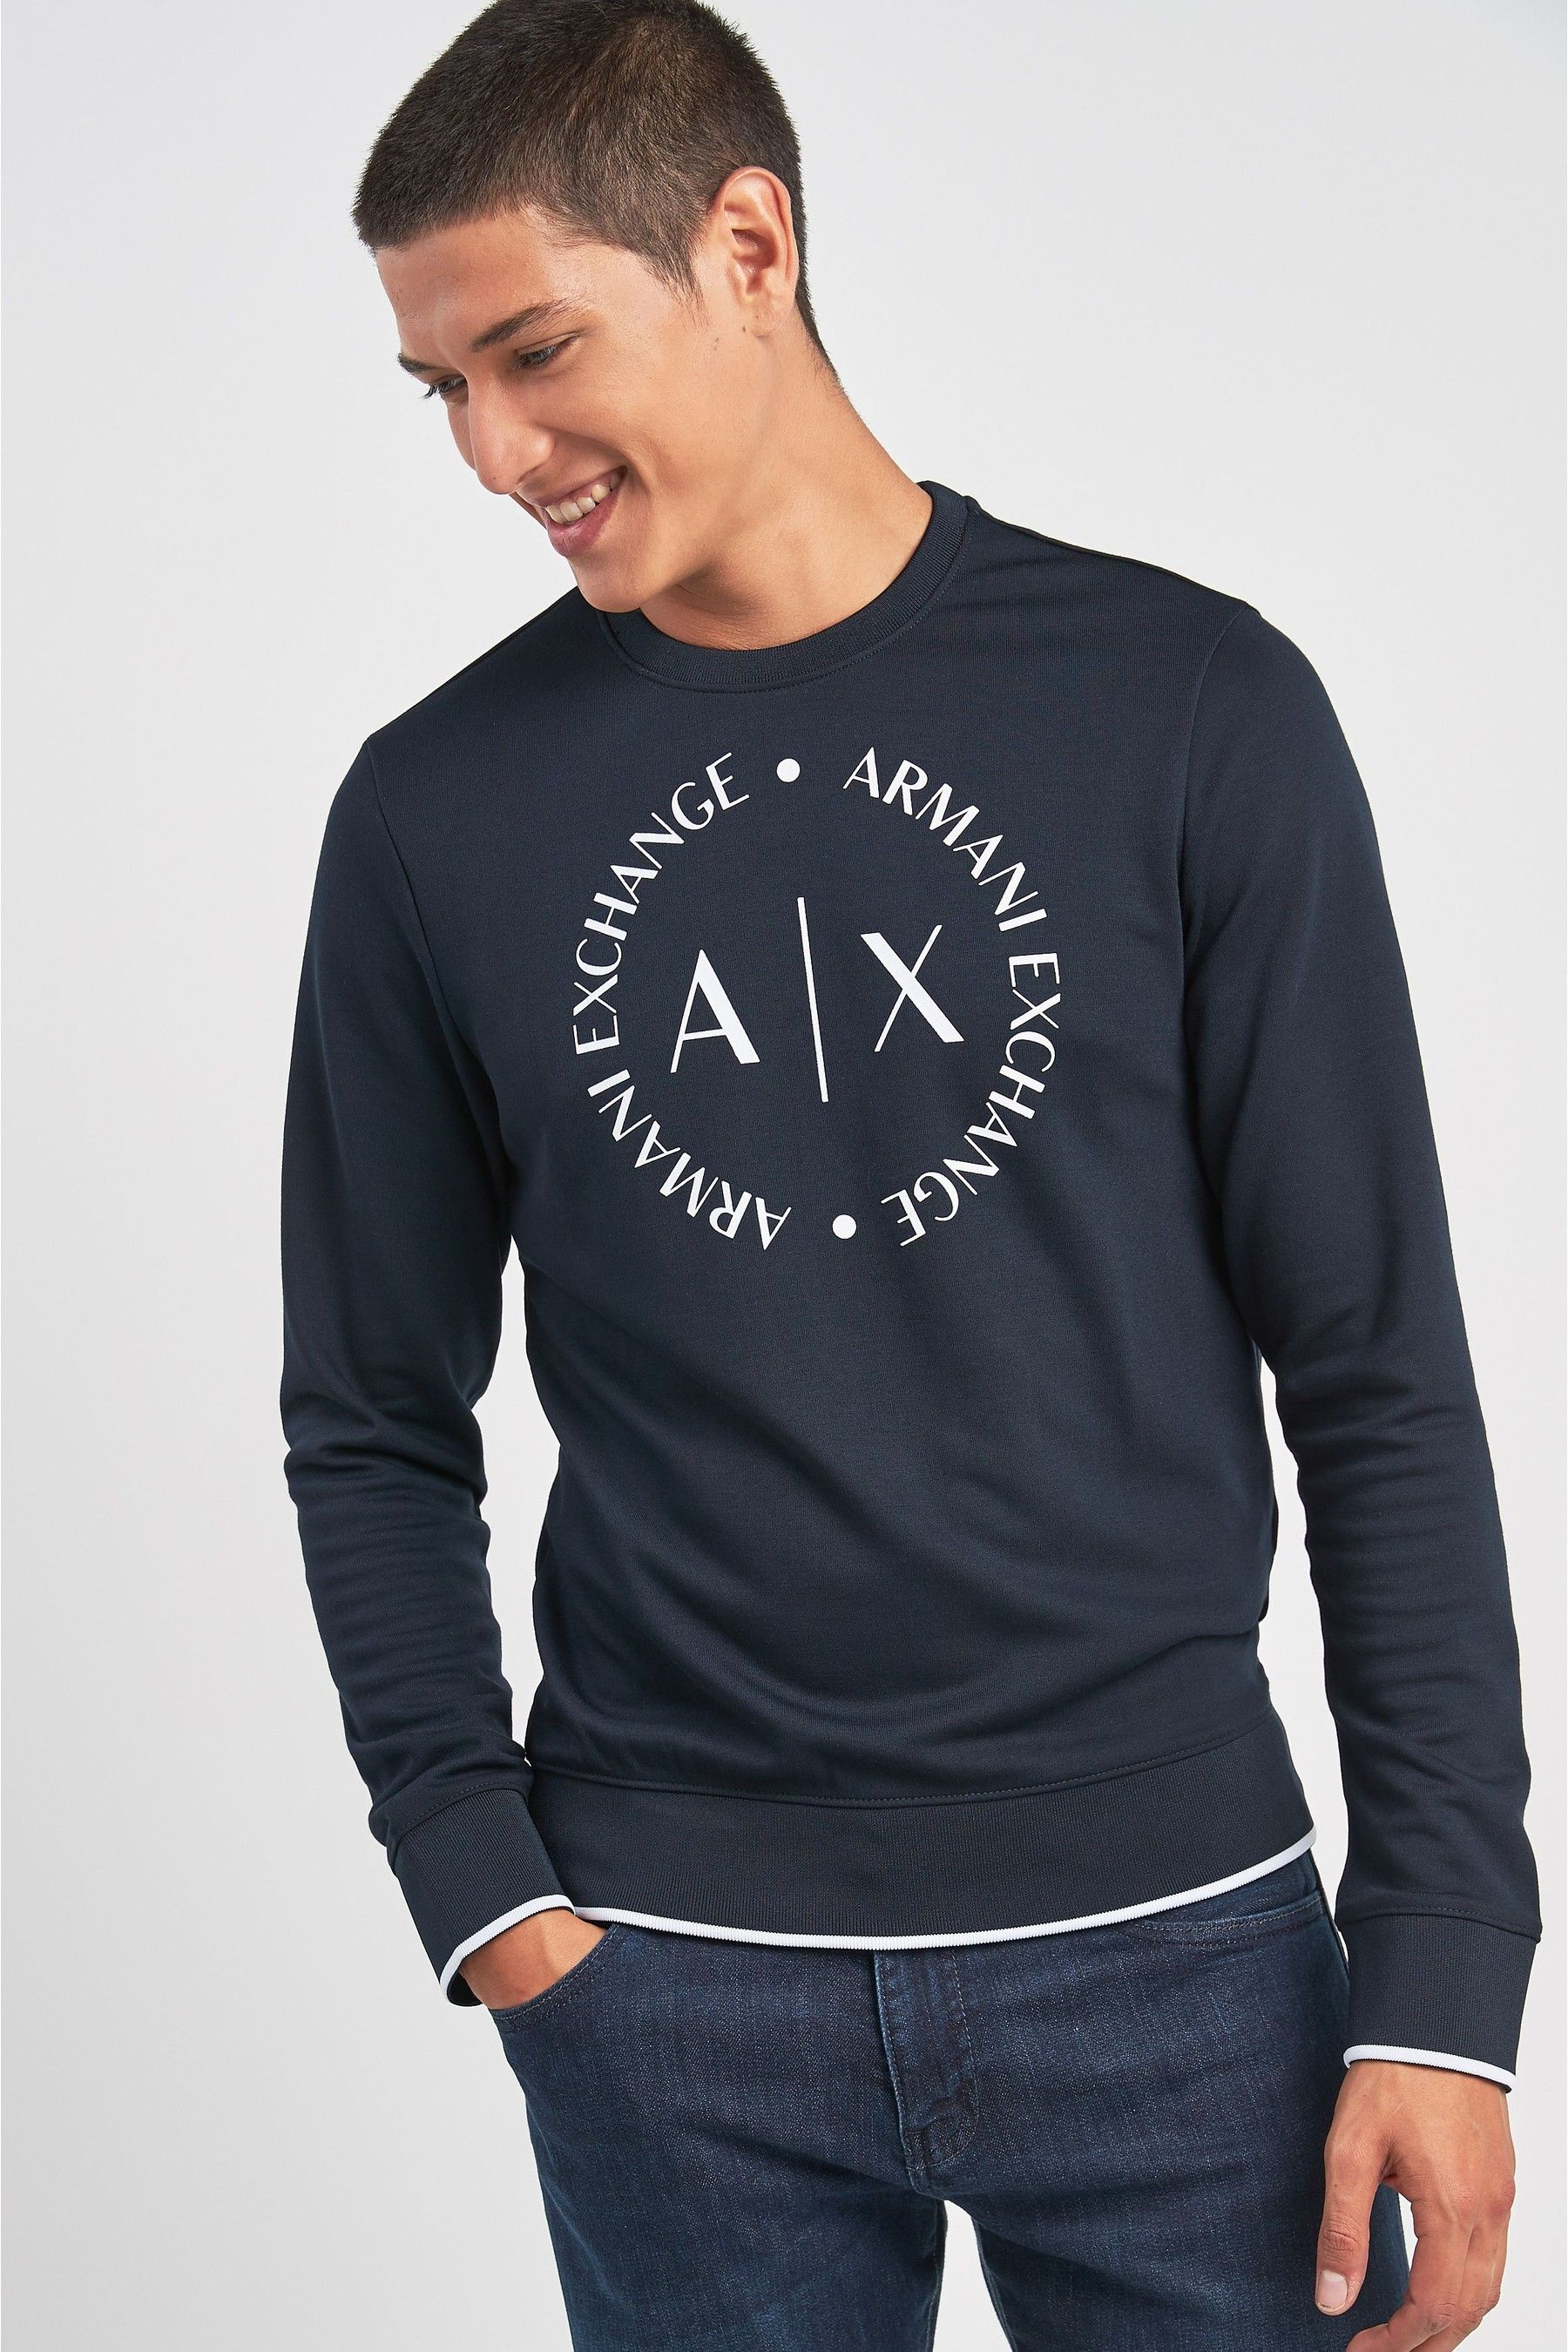 quality products retail prices unique design Mens Armani Exchange Navy AX Logo Sweat - Blue | Products in ...